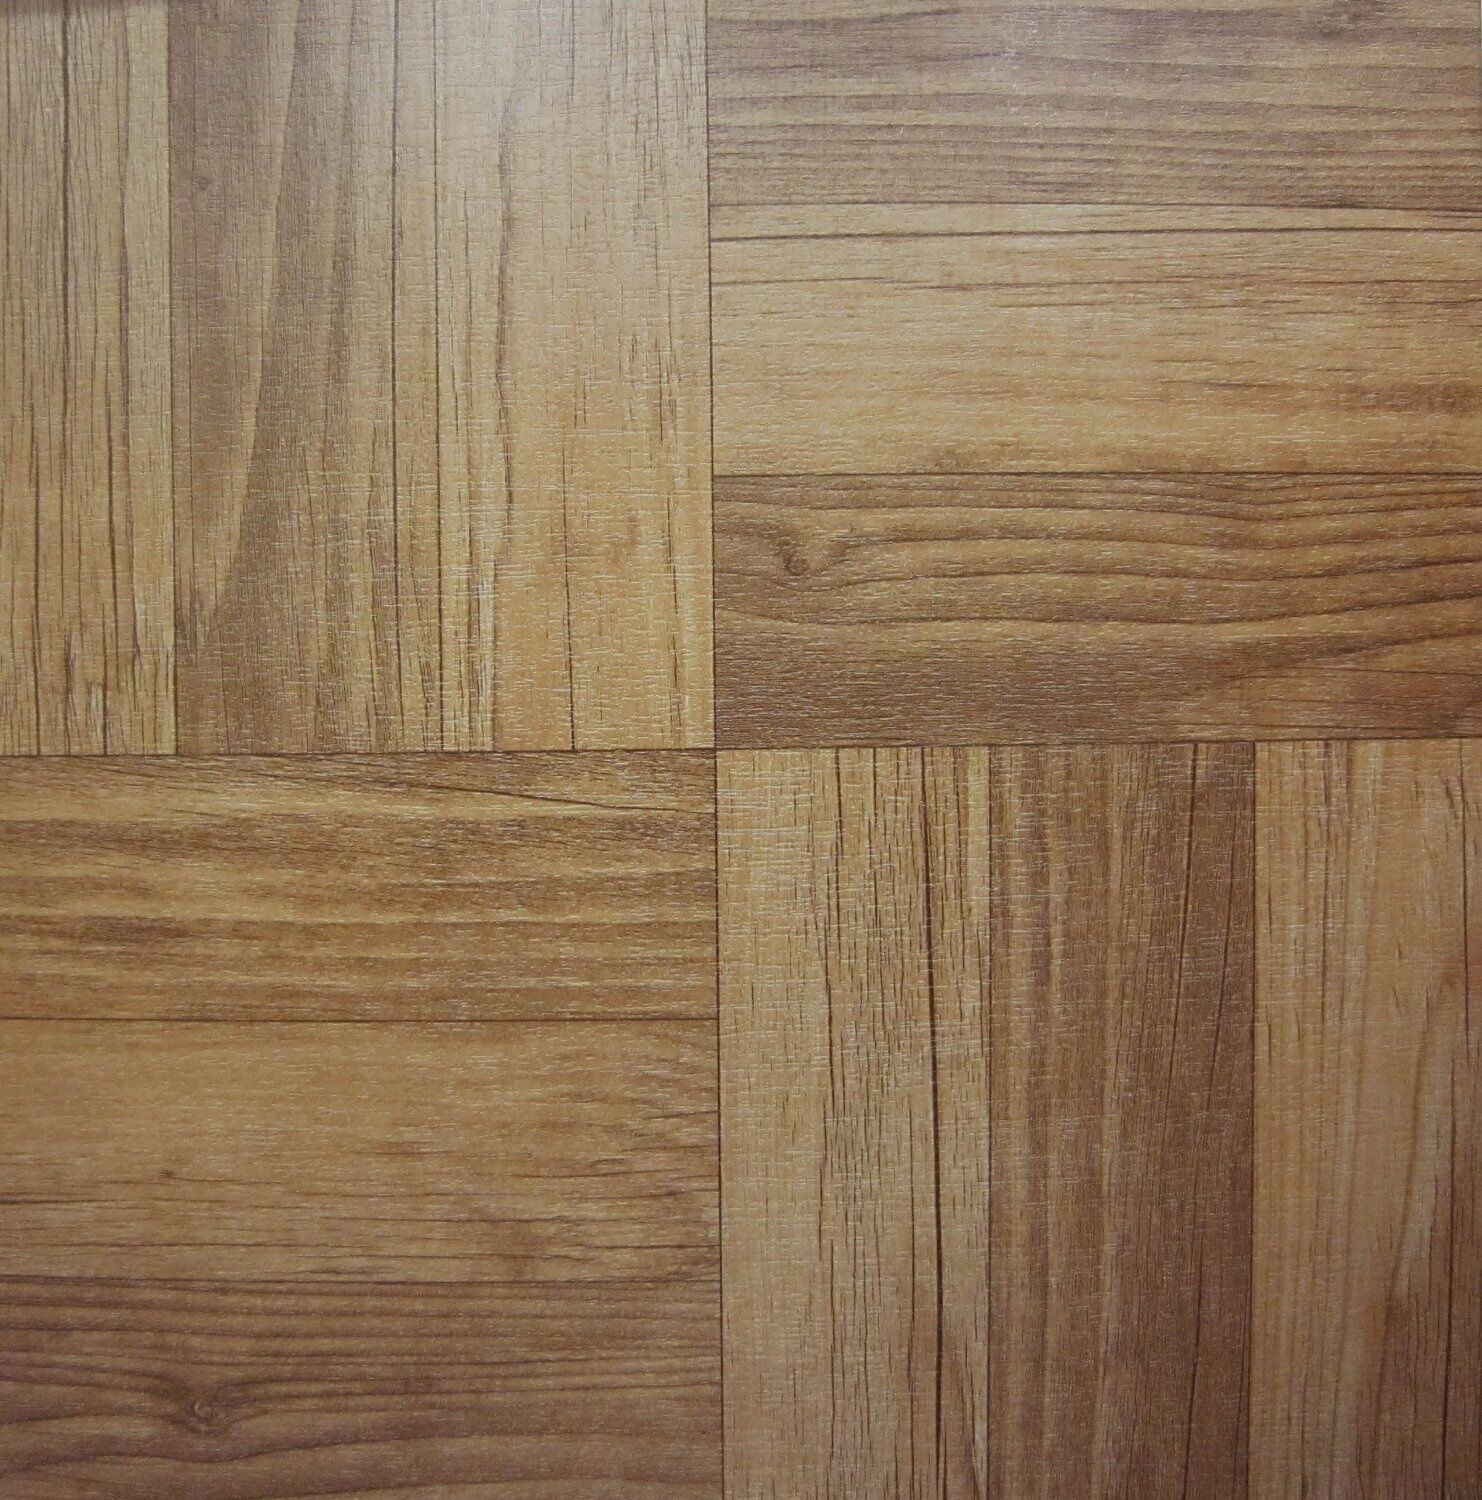 28 X Dark Wood Sq Self Adhesive Stick On Vinyl Flooring